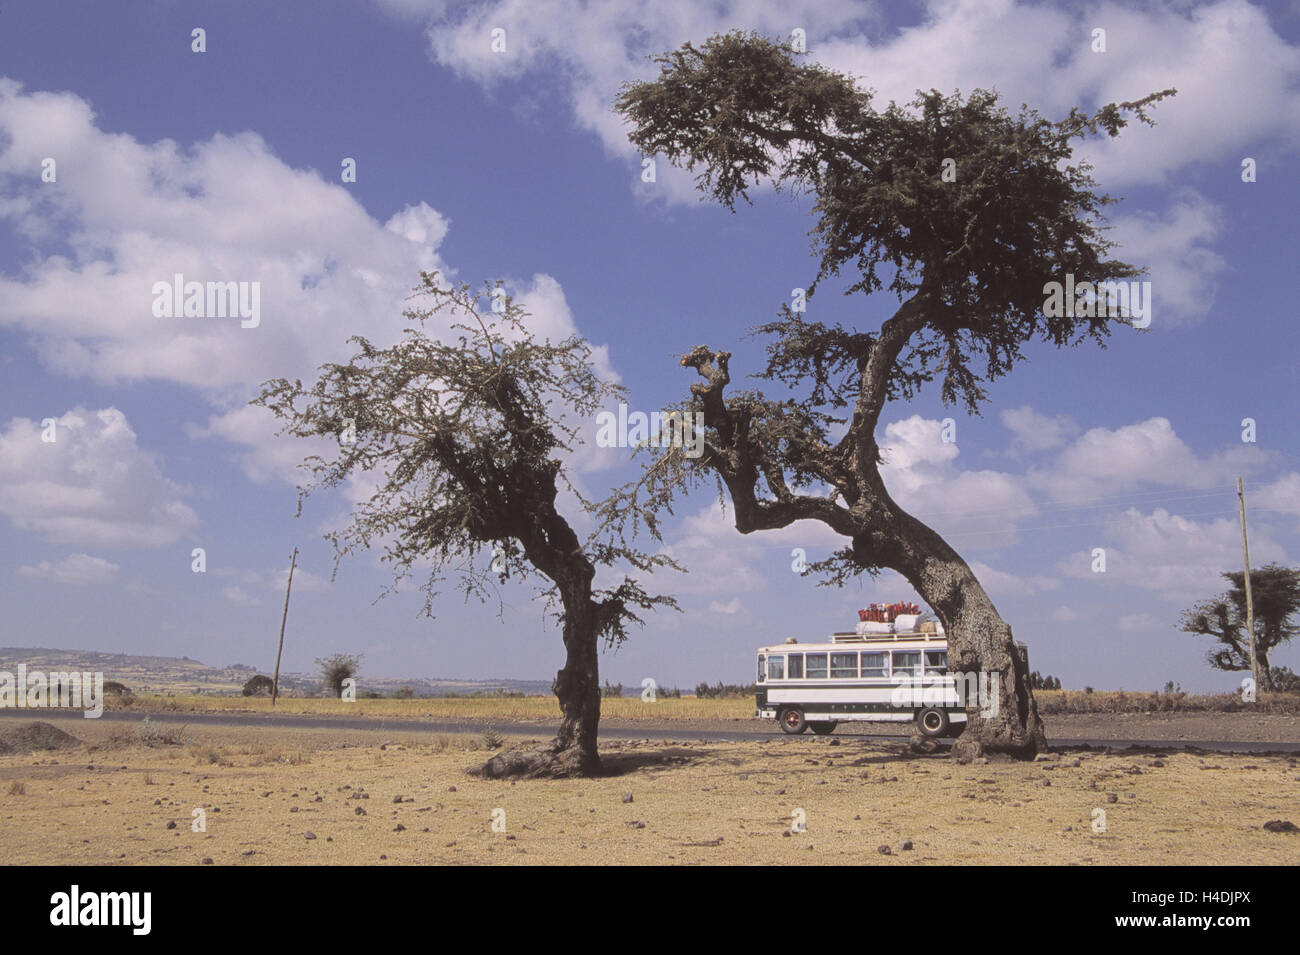 Ethiopia, close Addis Ababa, country road, regular bus, trees, Africa, north-east, Africa, Ityopia, south Ethiopia, - Stock Image